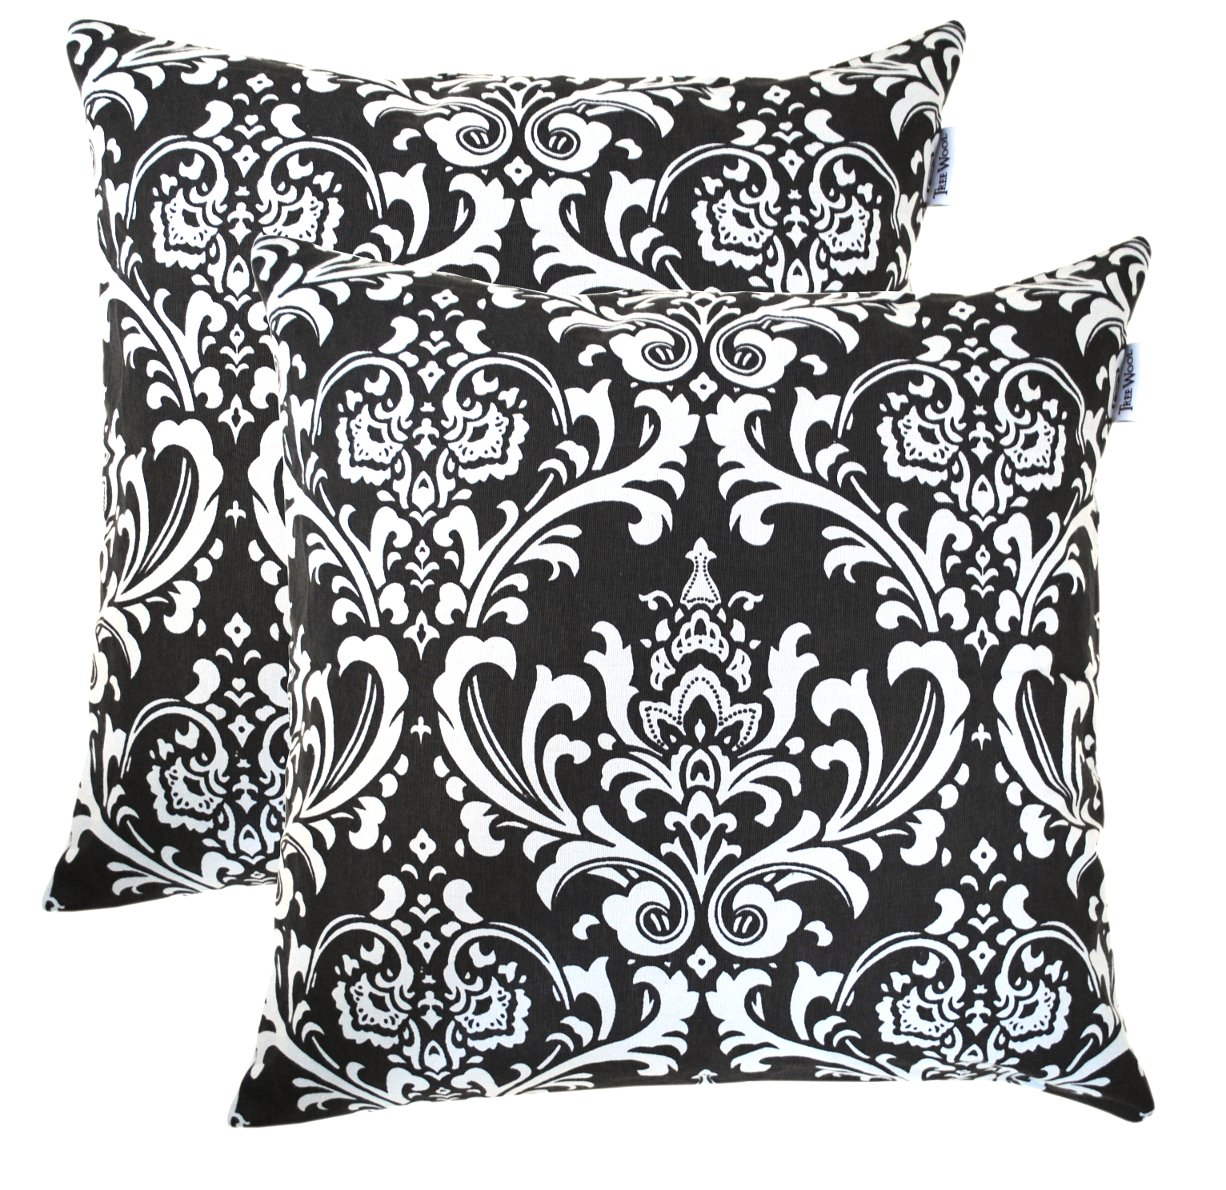 TreeWool, (Pack of 2) Cotton Canvas Damask Accent Decorative Throw Pillow Covers (20 x 20 Inches, Black & White)